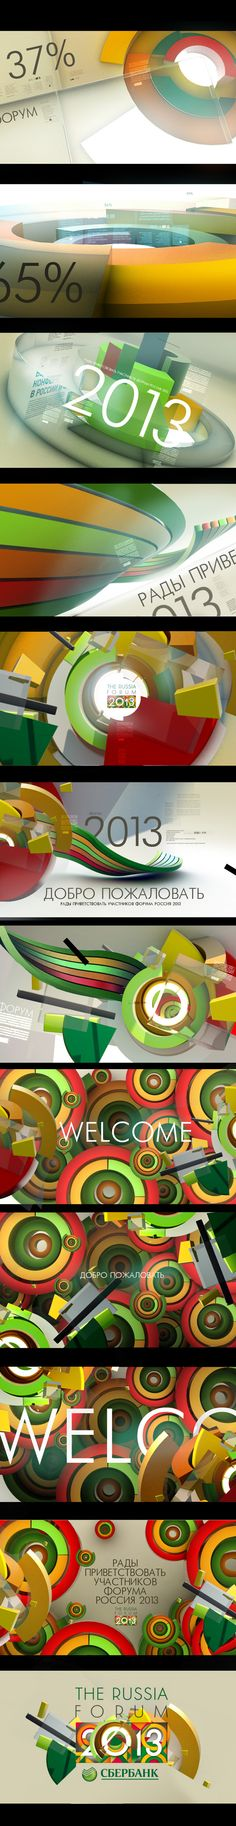 SBER_FORUM_2013 by egor antonov, via Behance